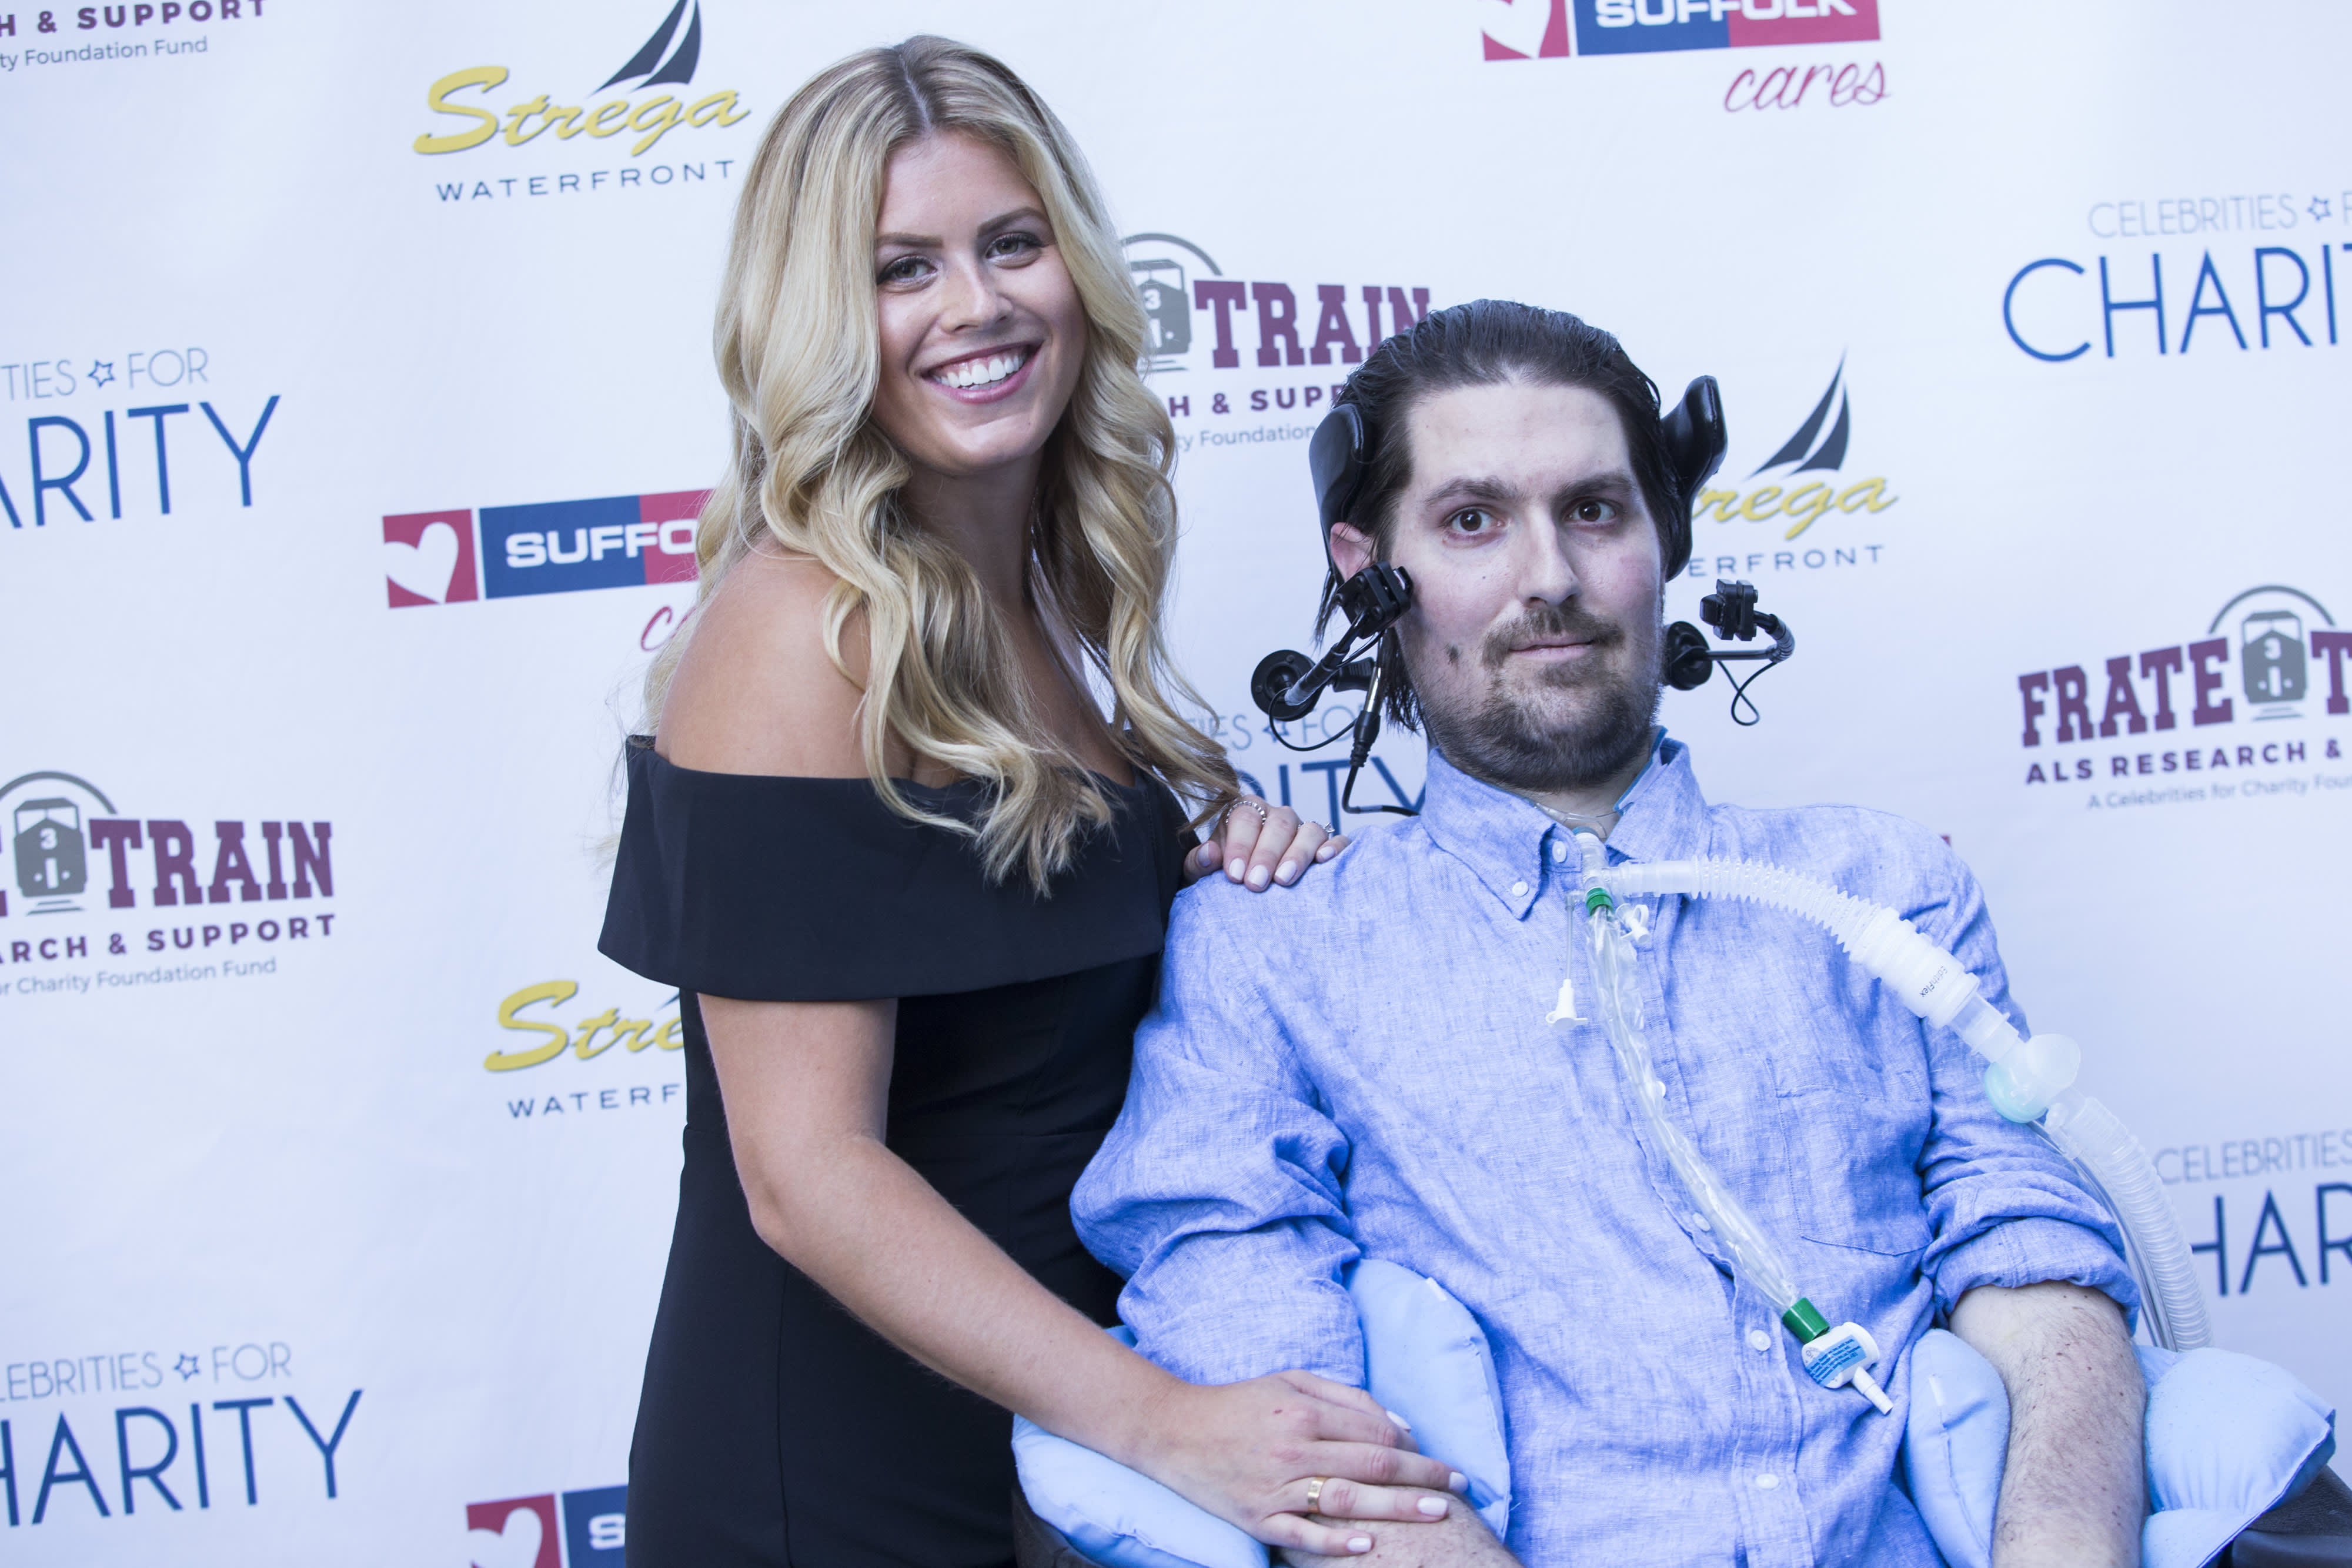 Pete Frates, inspiration for the ALS Ice Bucket Challenge, dies at 34